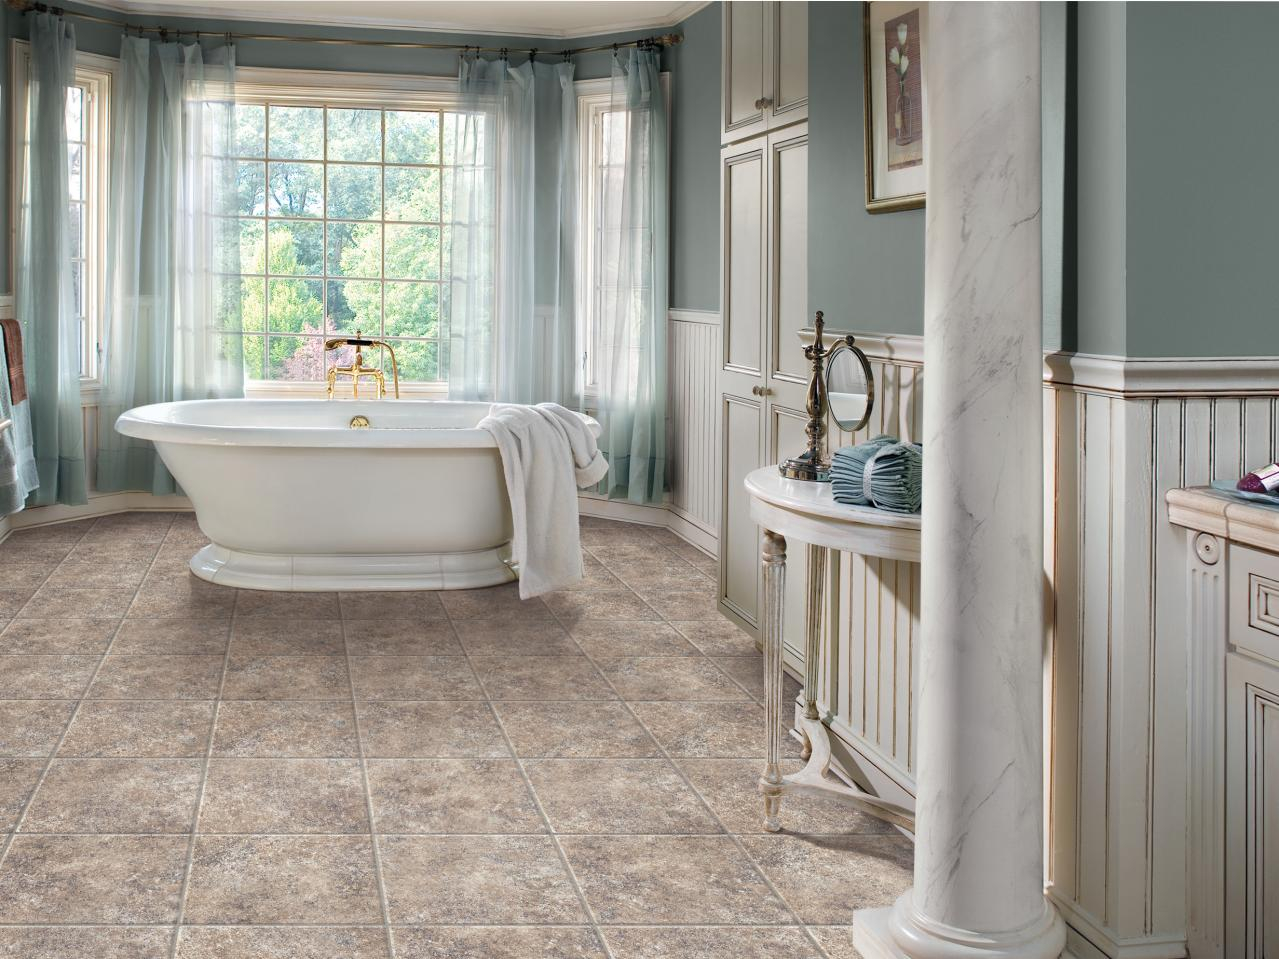 Cool Bathroom : Vinyl Flooring For Bathroom Ideas Bathroom Vinyl Flooring with regard to Flooring For Bathrooms